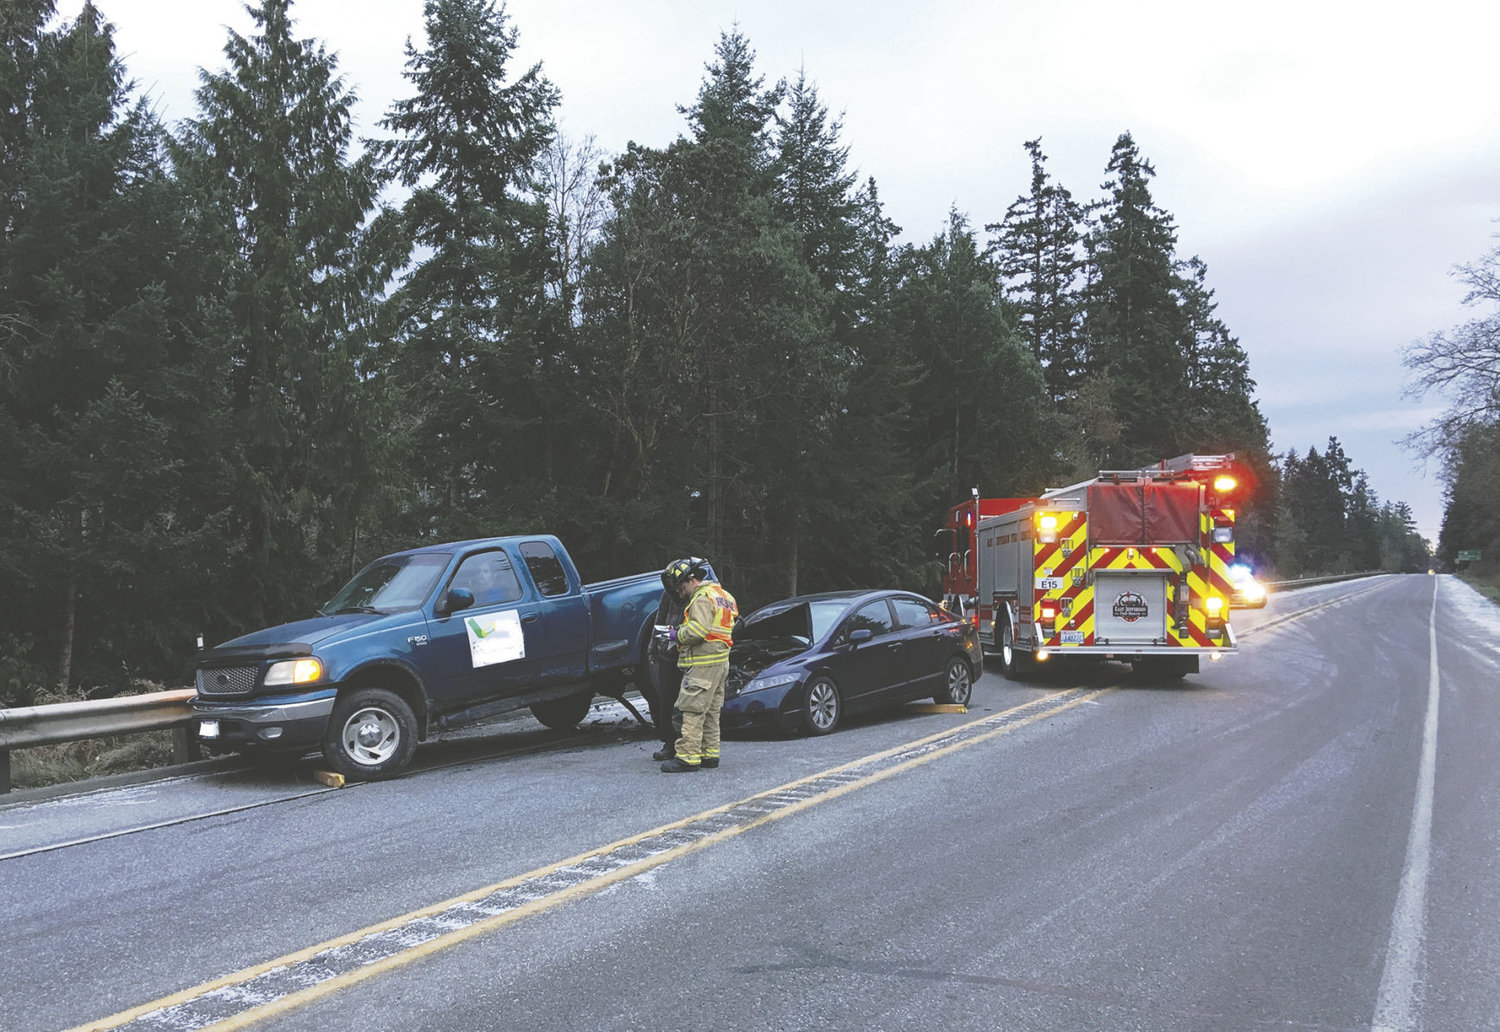 This Ford pickup was outbound from Port Townsend when it was caught in the middle of a chain-reaction, rear-end accident at about 7:55 a.m., Saturday, Dec. 17. No one in either vehicle was injured. Photo by Bill Beezley, East Jefferson Fire Rescue